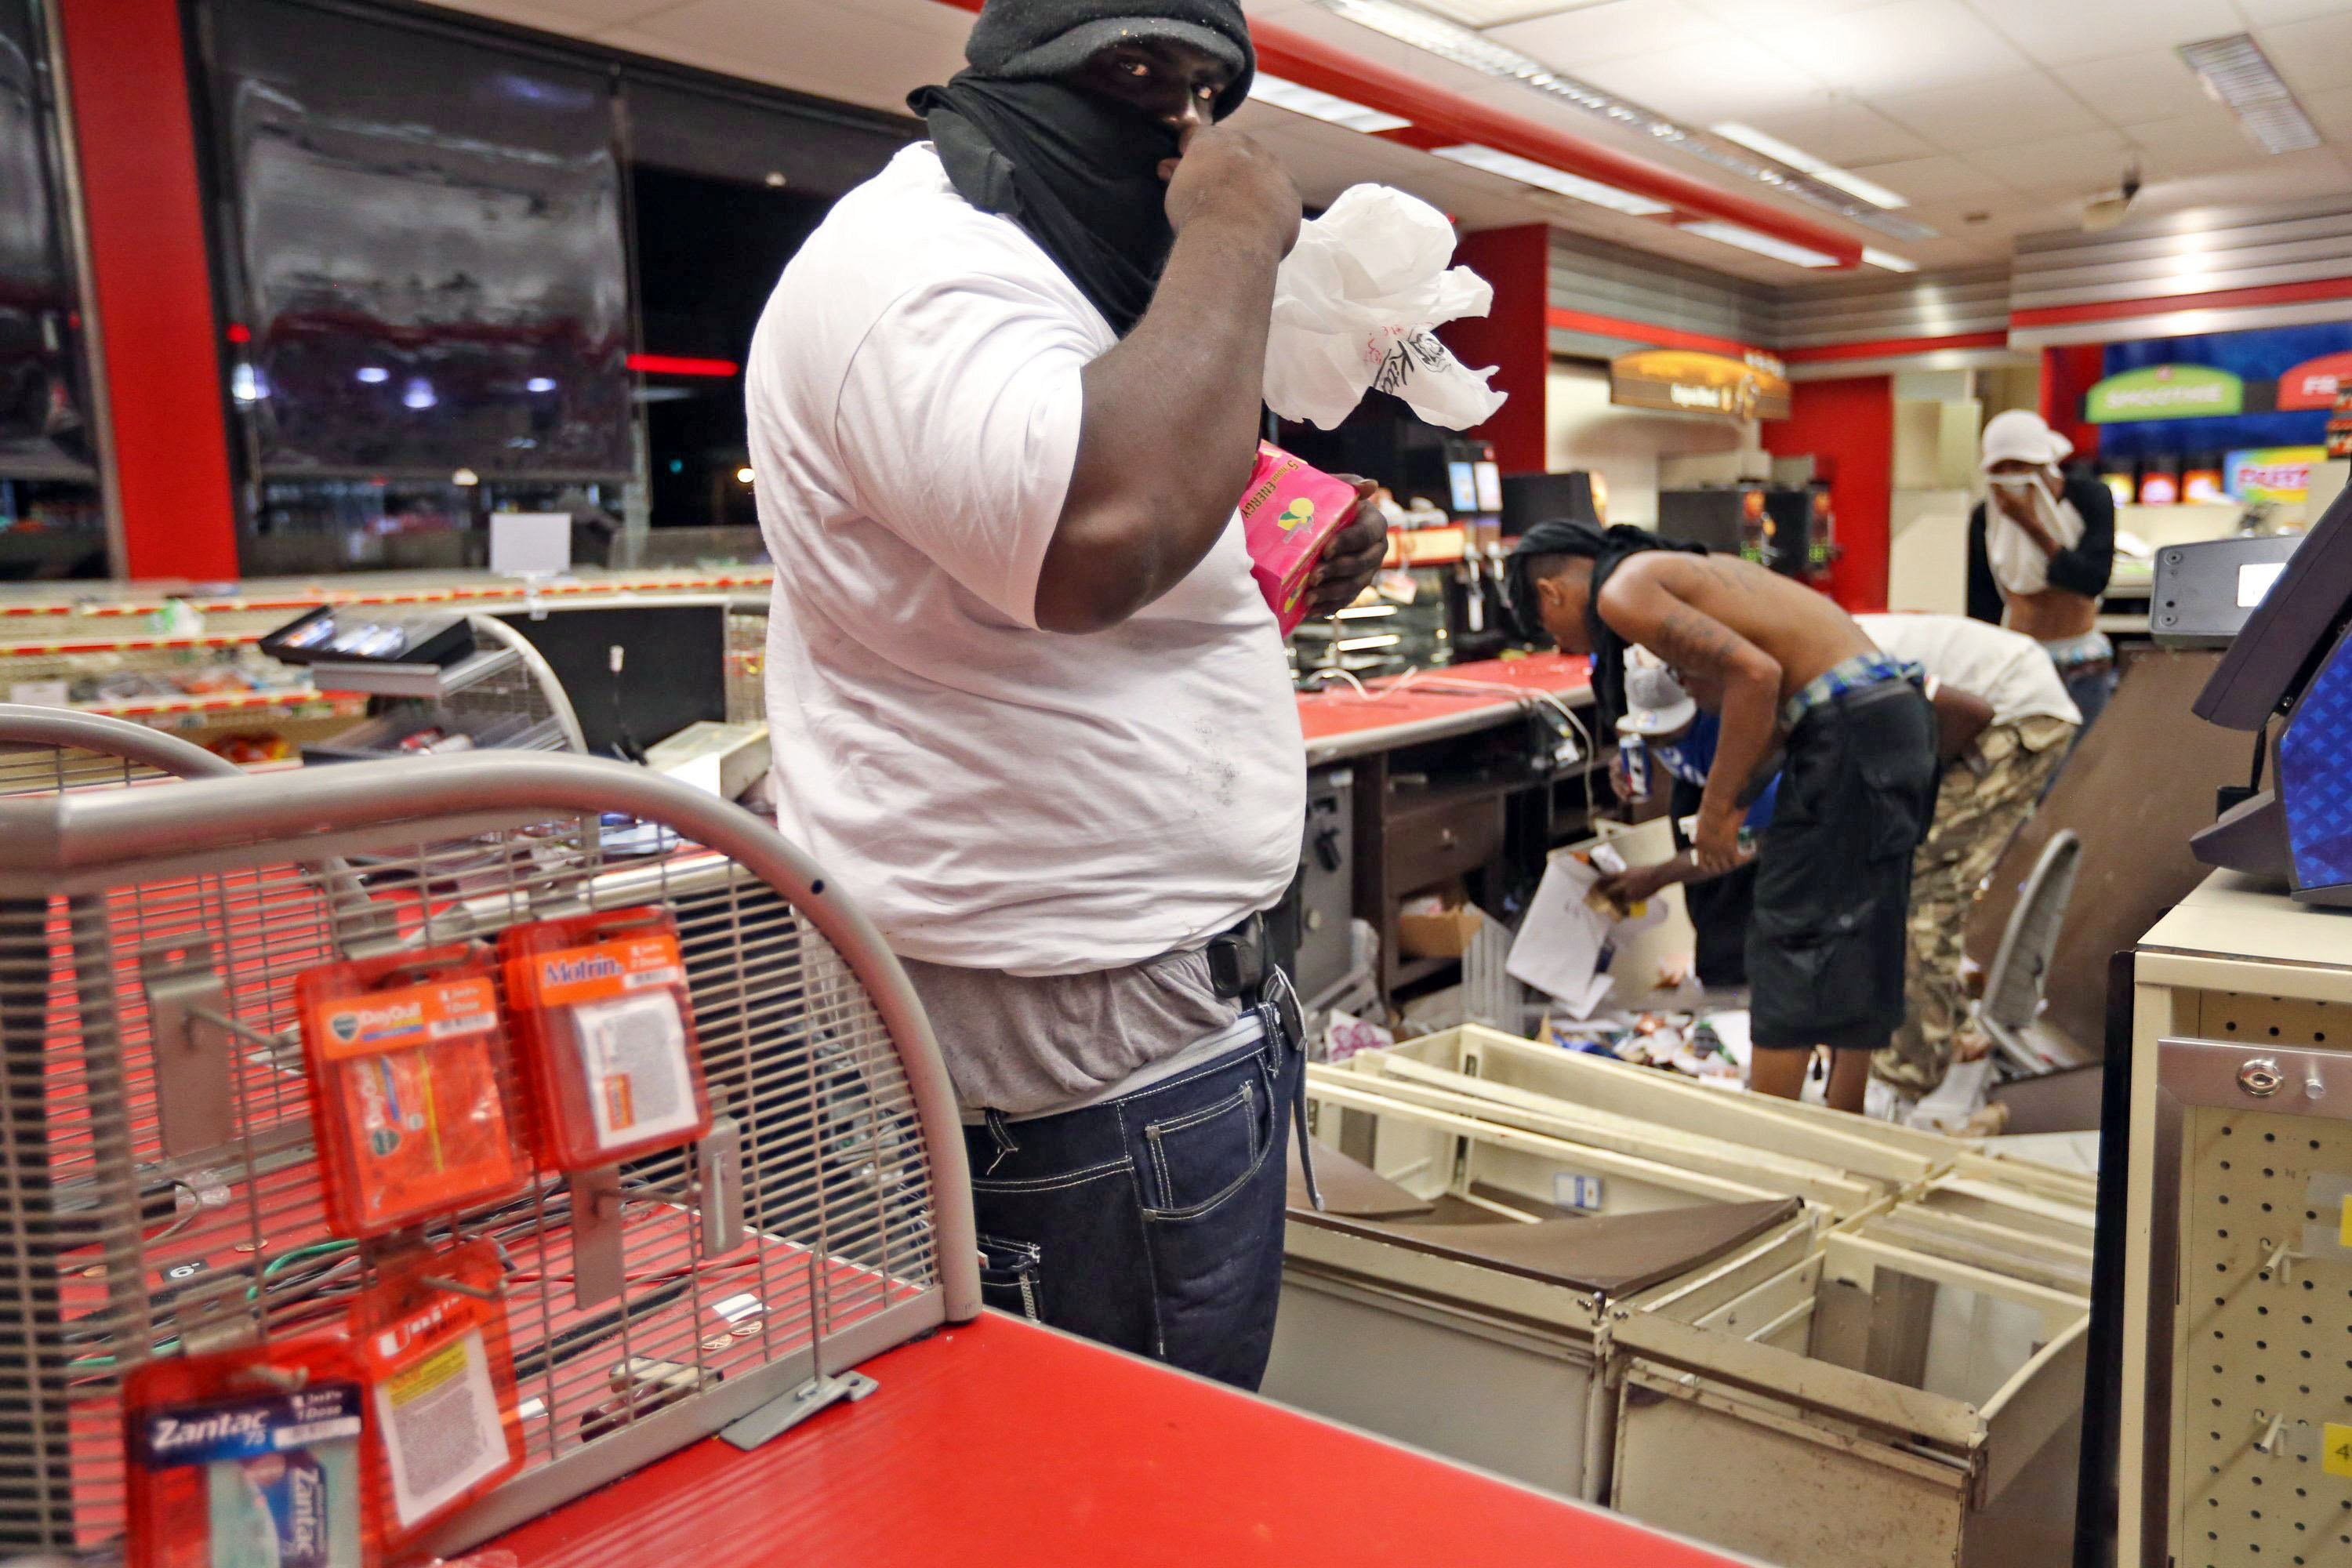 People are seen looting in a store in Ferguson, Mo. on Aug. 10, 2014.